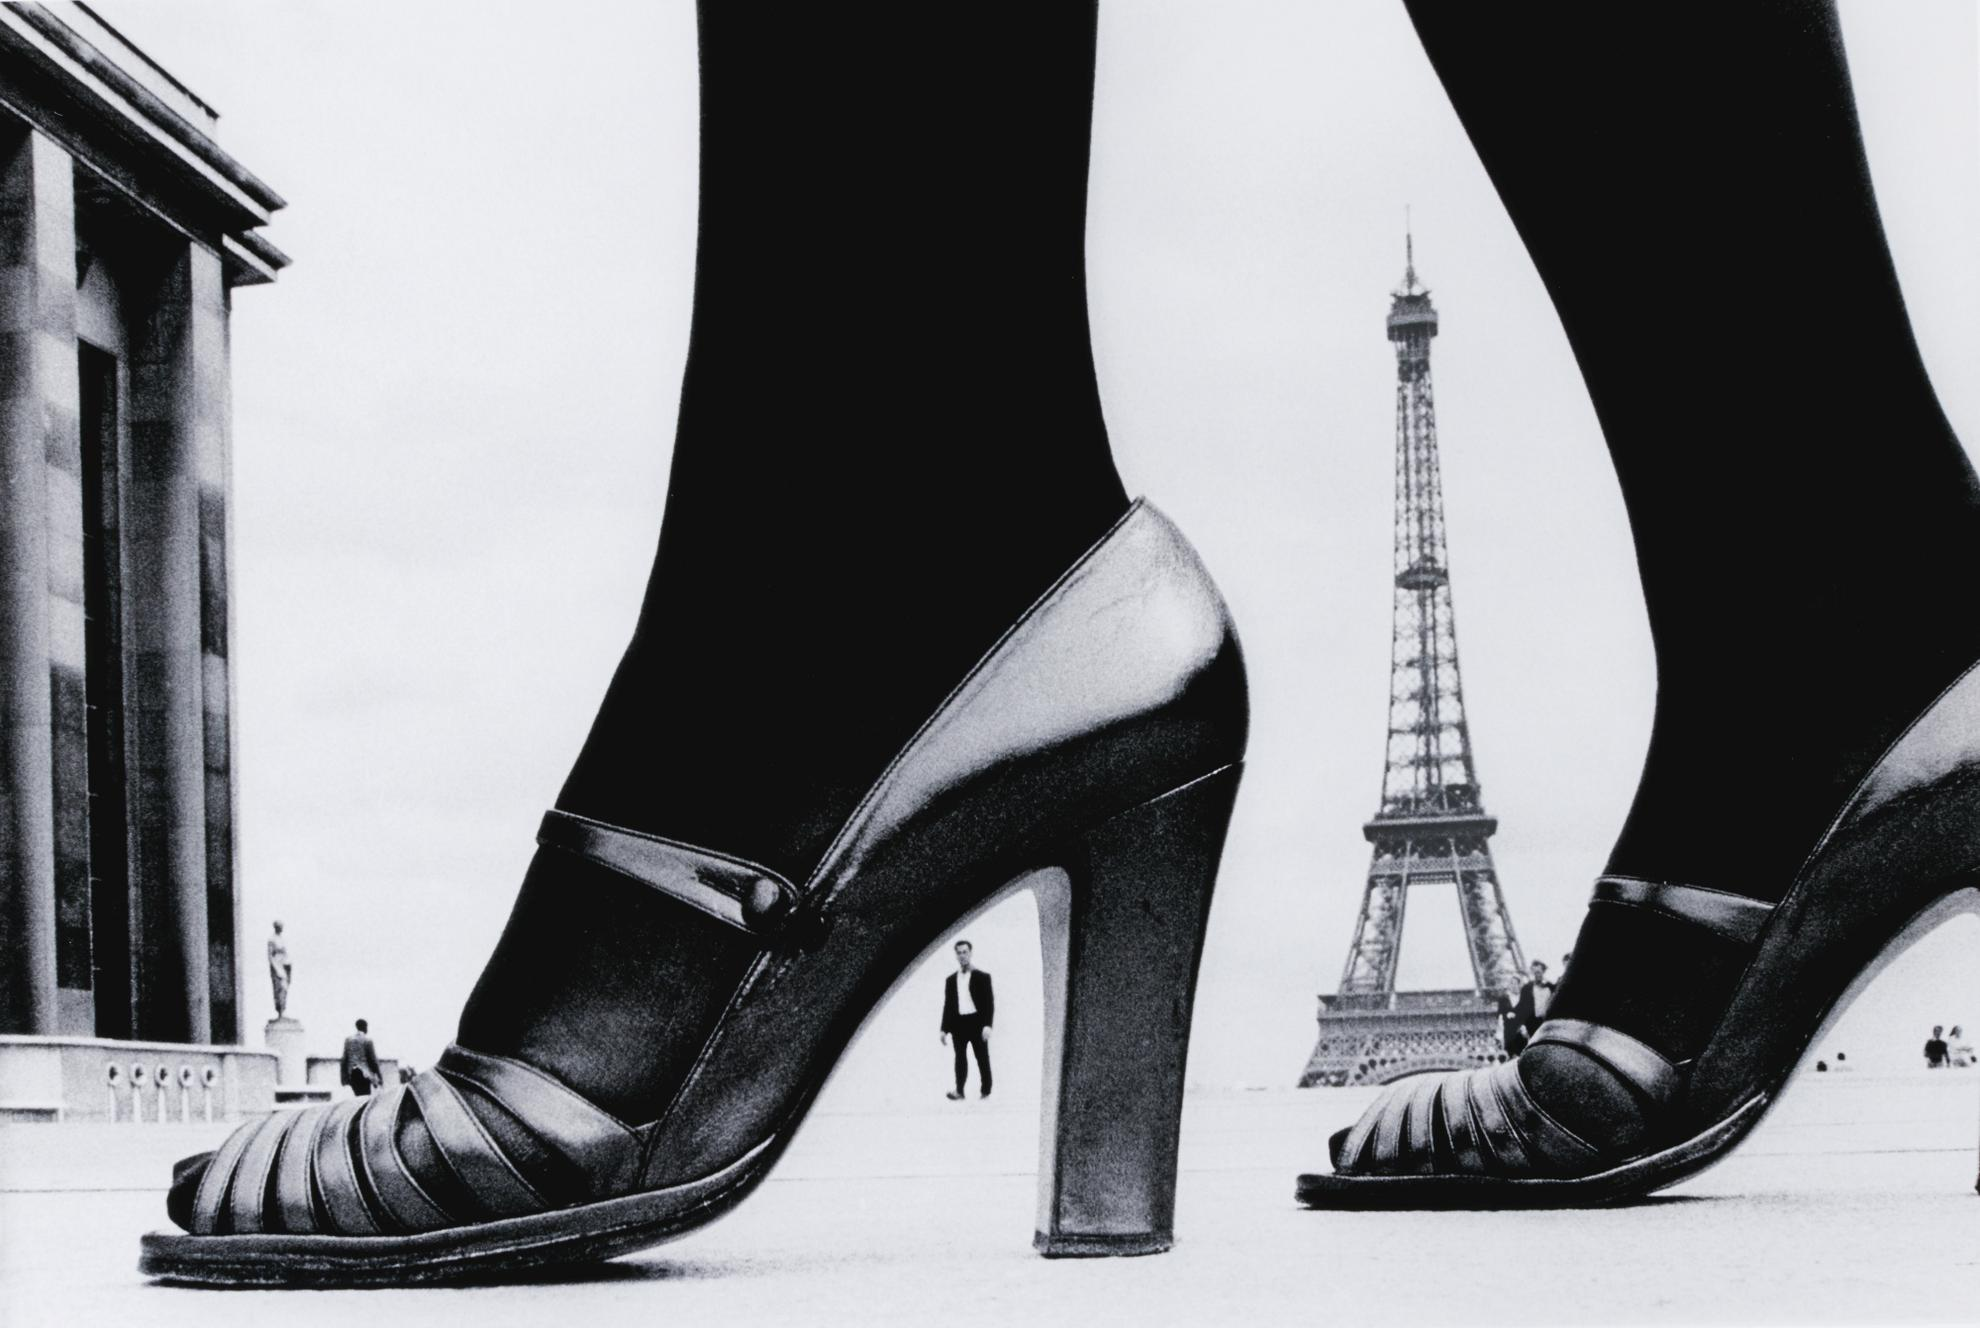 Frank Horvat-Shoe And Eiffel Tower (A), Paris-1974